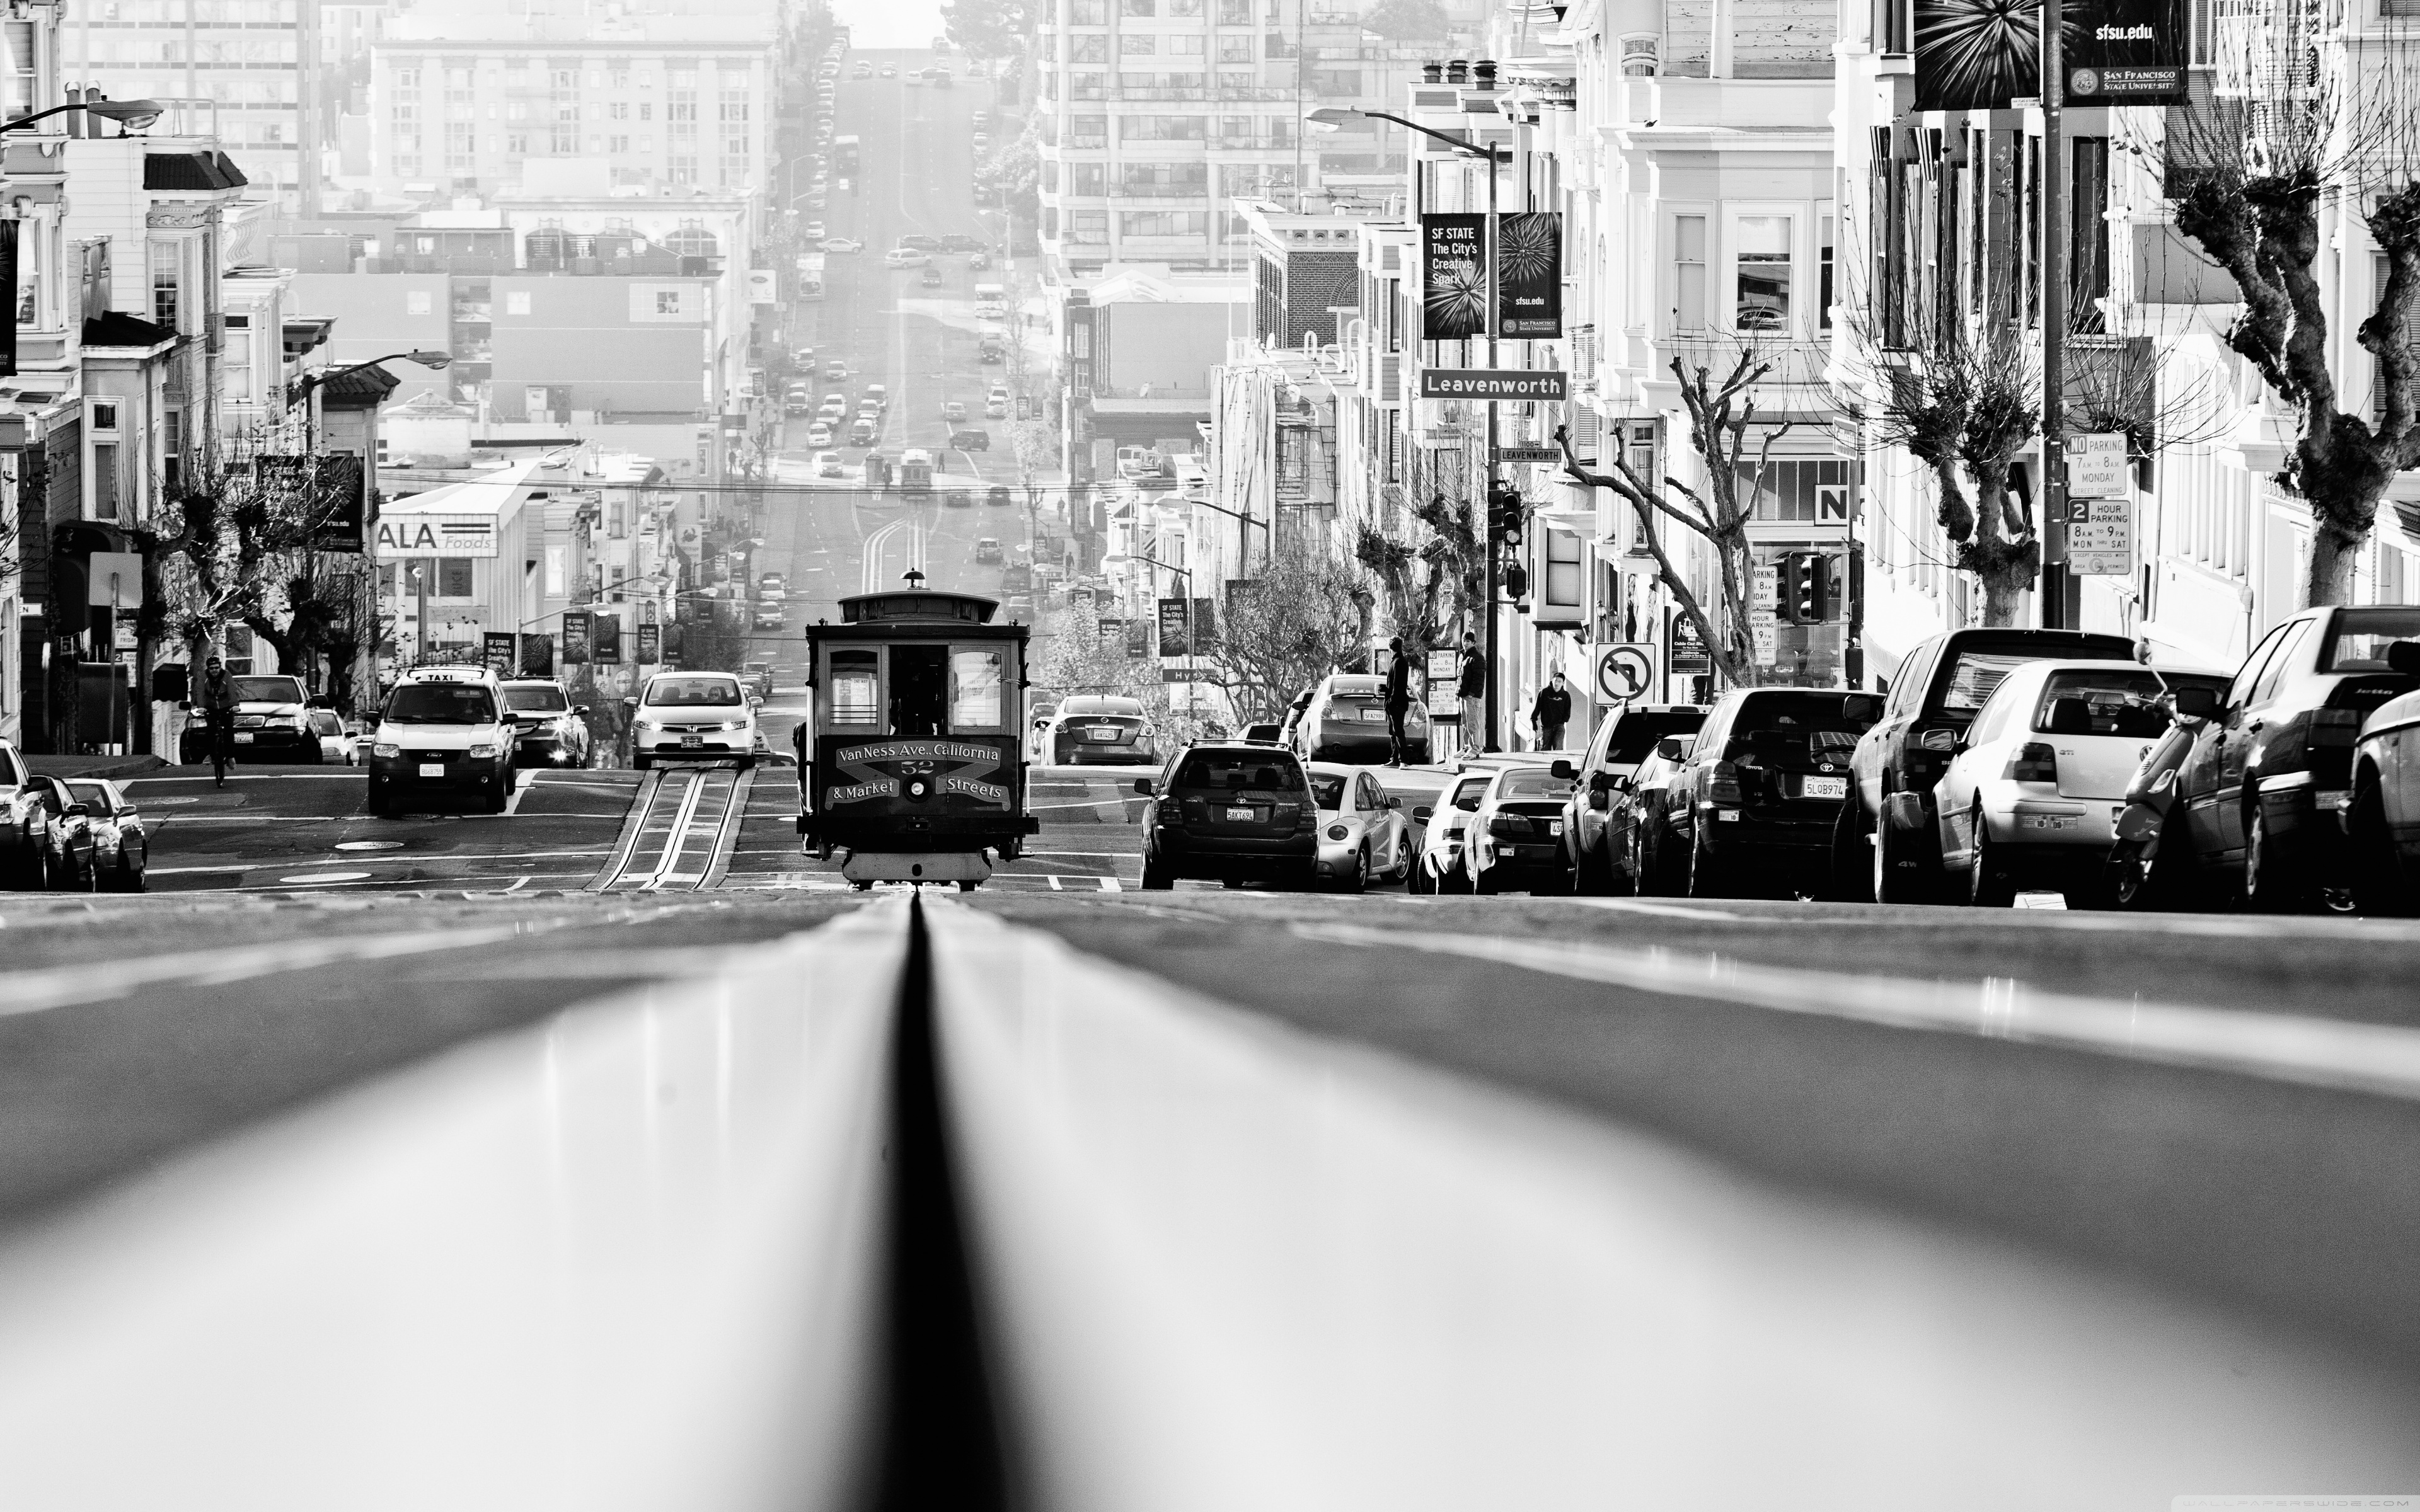 Cable Car Black And White Wallpaper Those Greater San Francisco Days 4k Hd Desktop Wallpaper